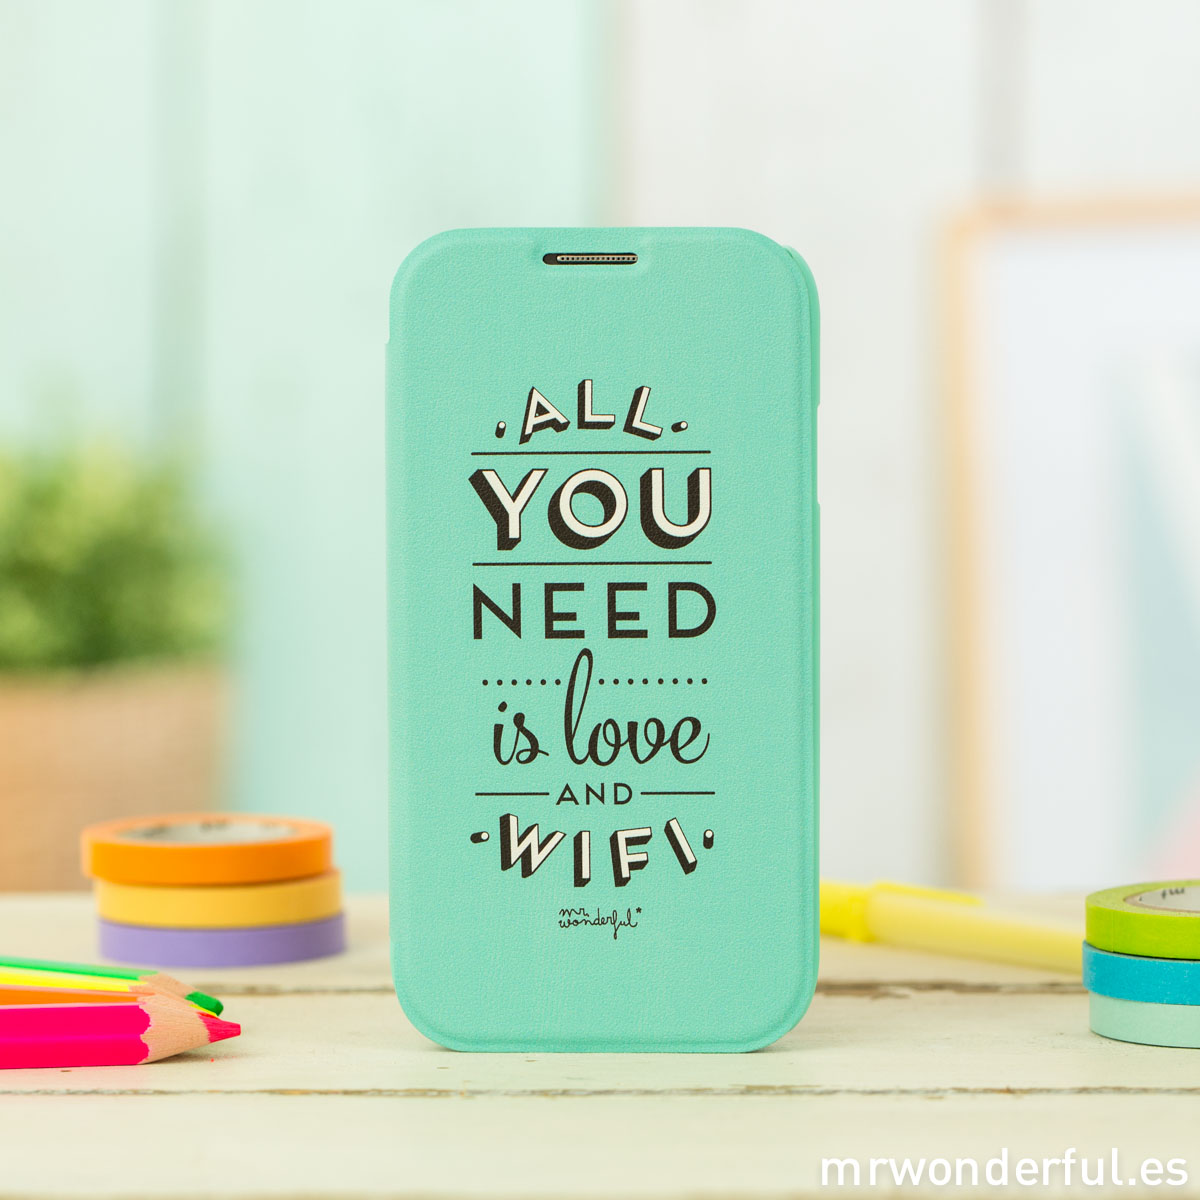 mrwonderful_MRFOL002_funda-mint-samsung-galaxy-S4_all-you-need-love-wifi-9